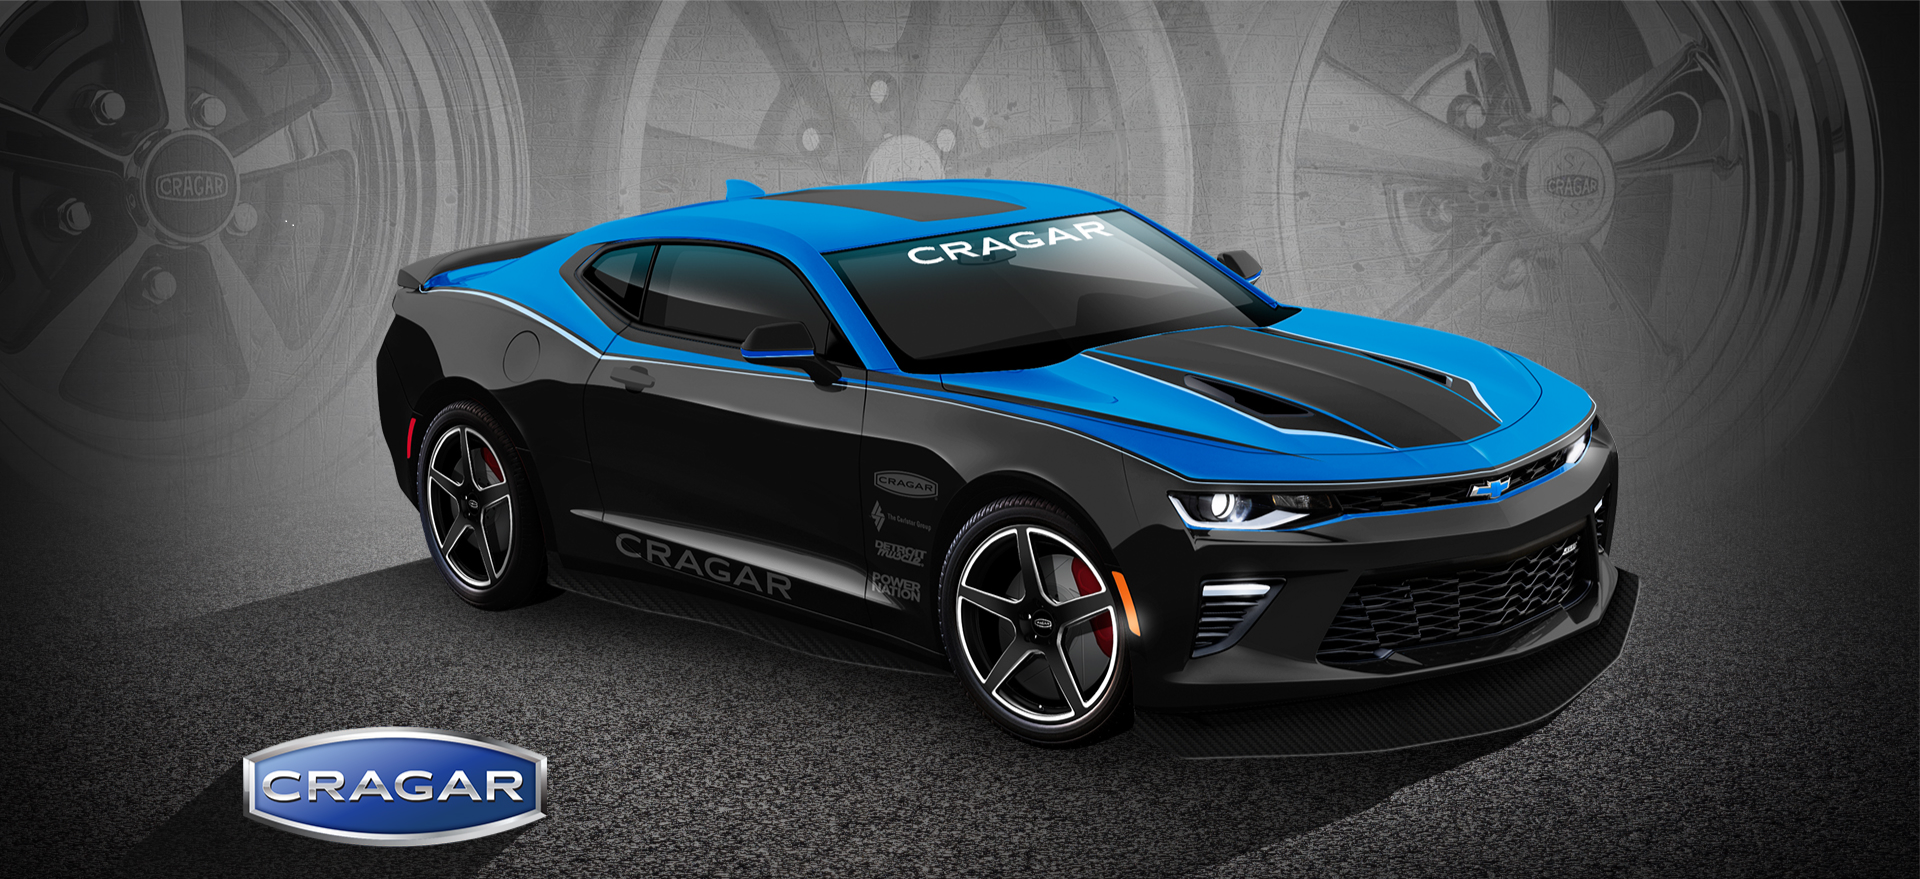 cragar camaro giveaway the carlstar group announces sweepstakes to win a 2016 4680